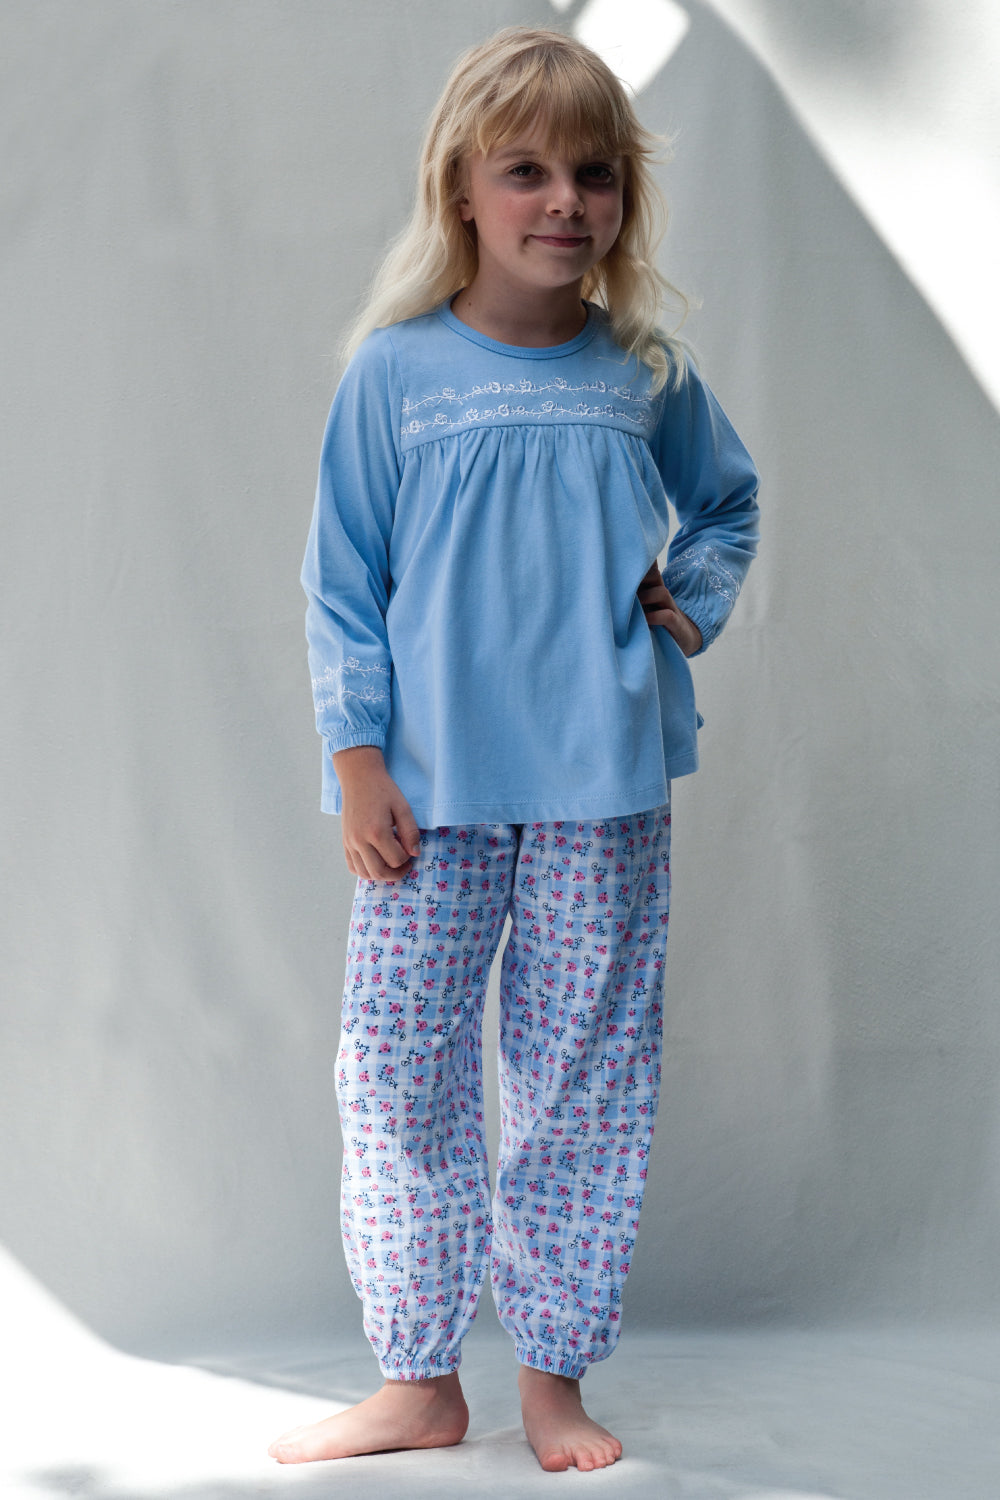 Blue Floral Print Jersey Girls Winter Pyjamas